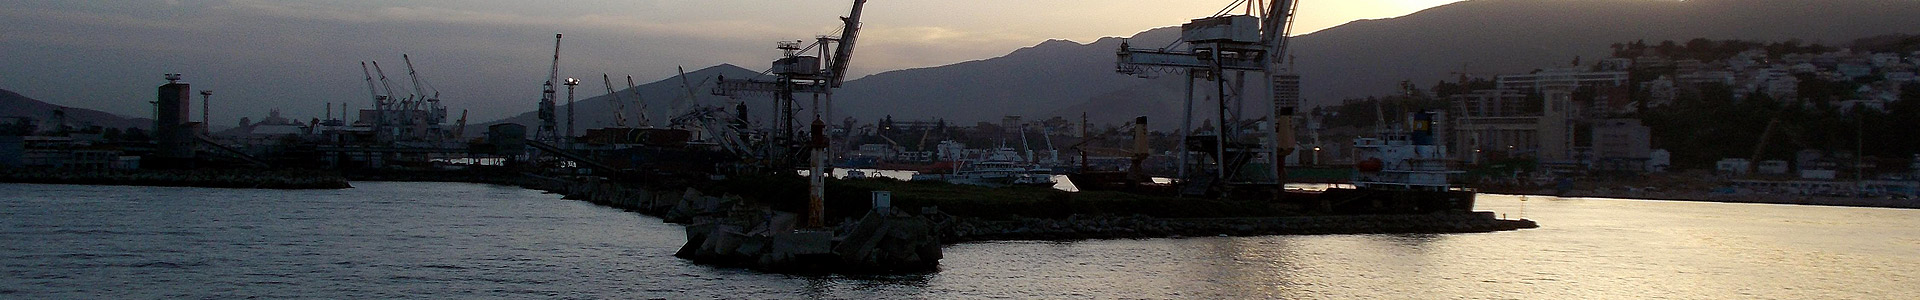 port_annaba.jpg